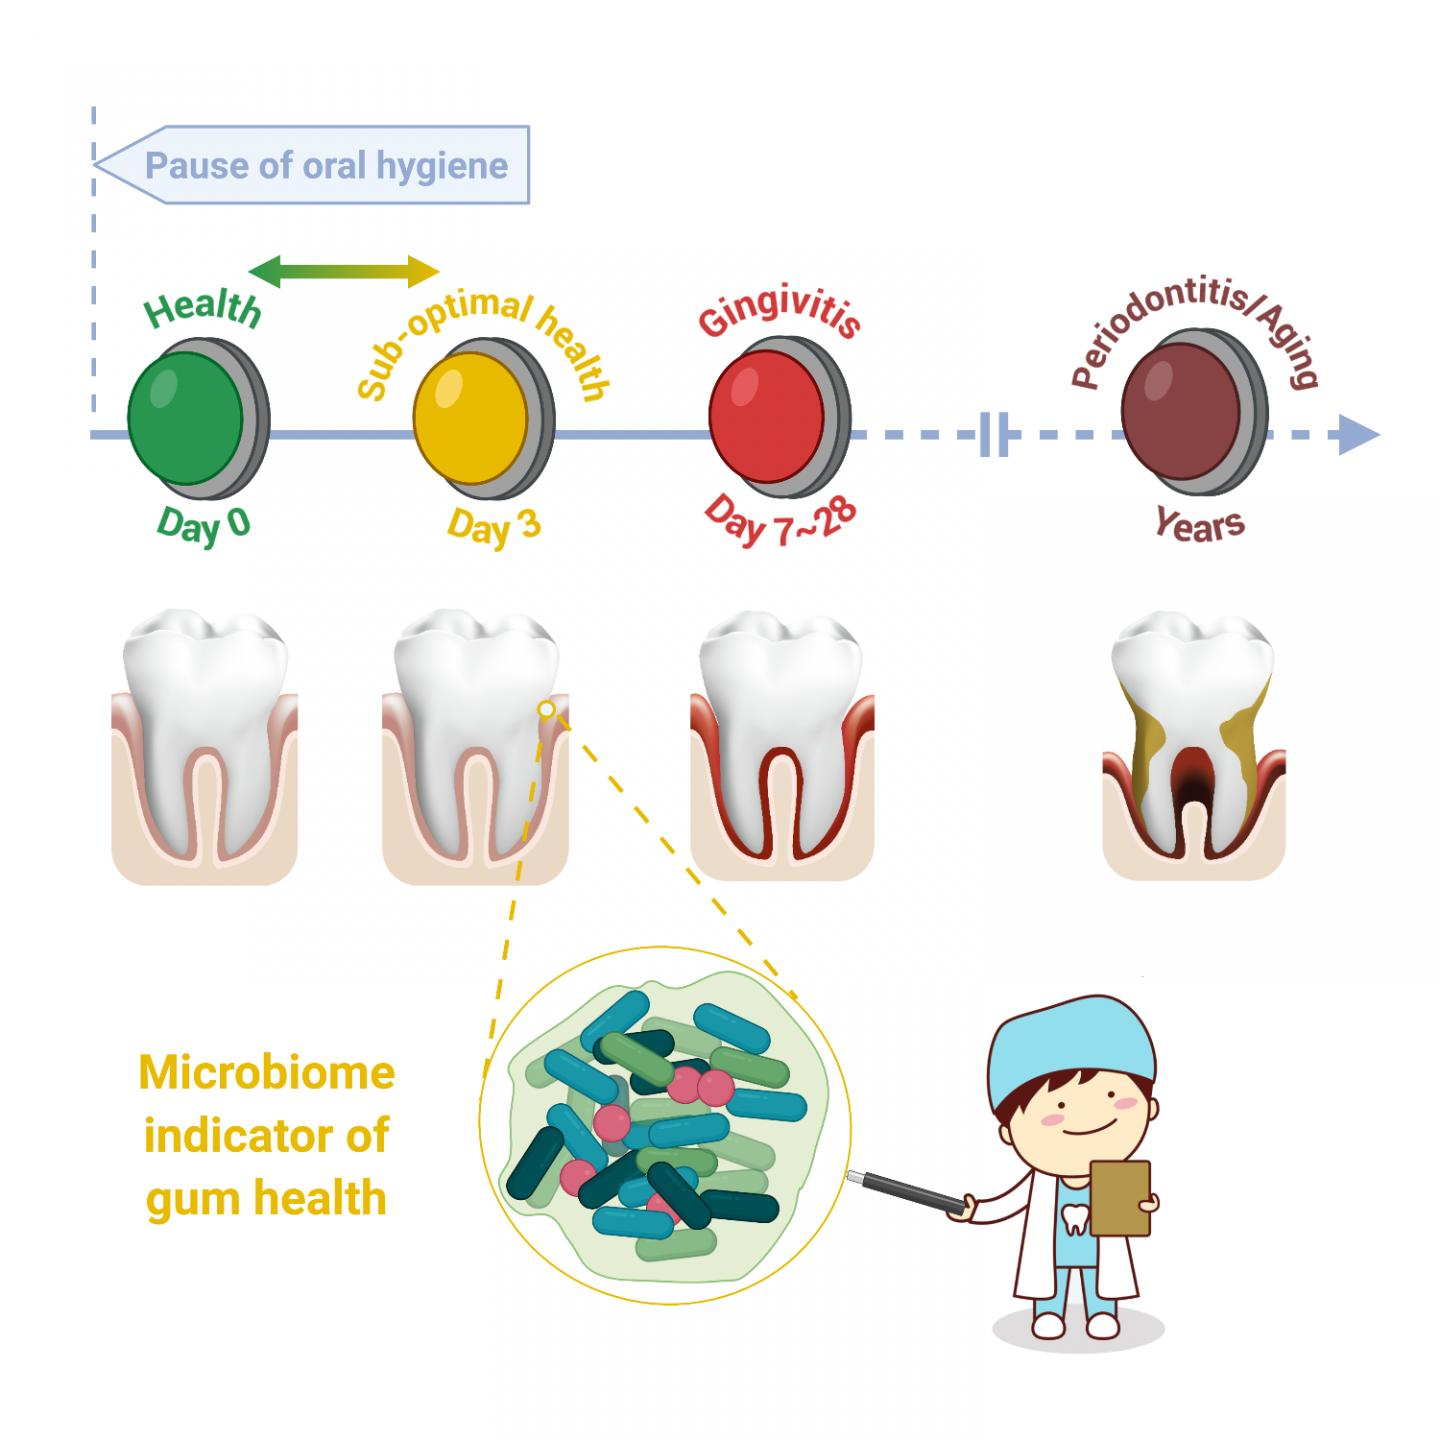 24-72 hours of poor oral hygiene impacts oral health